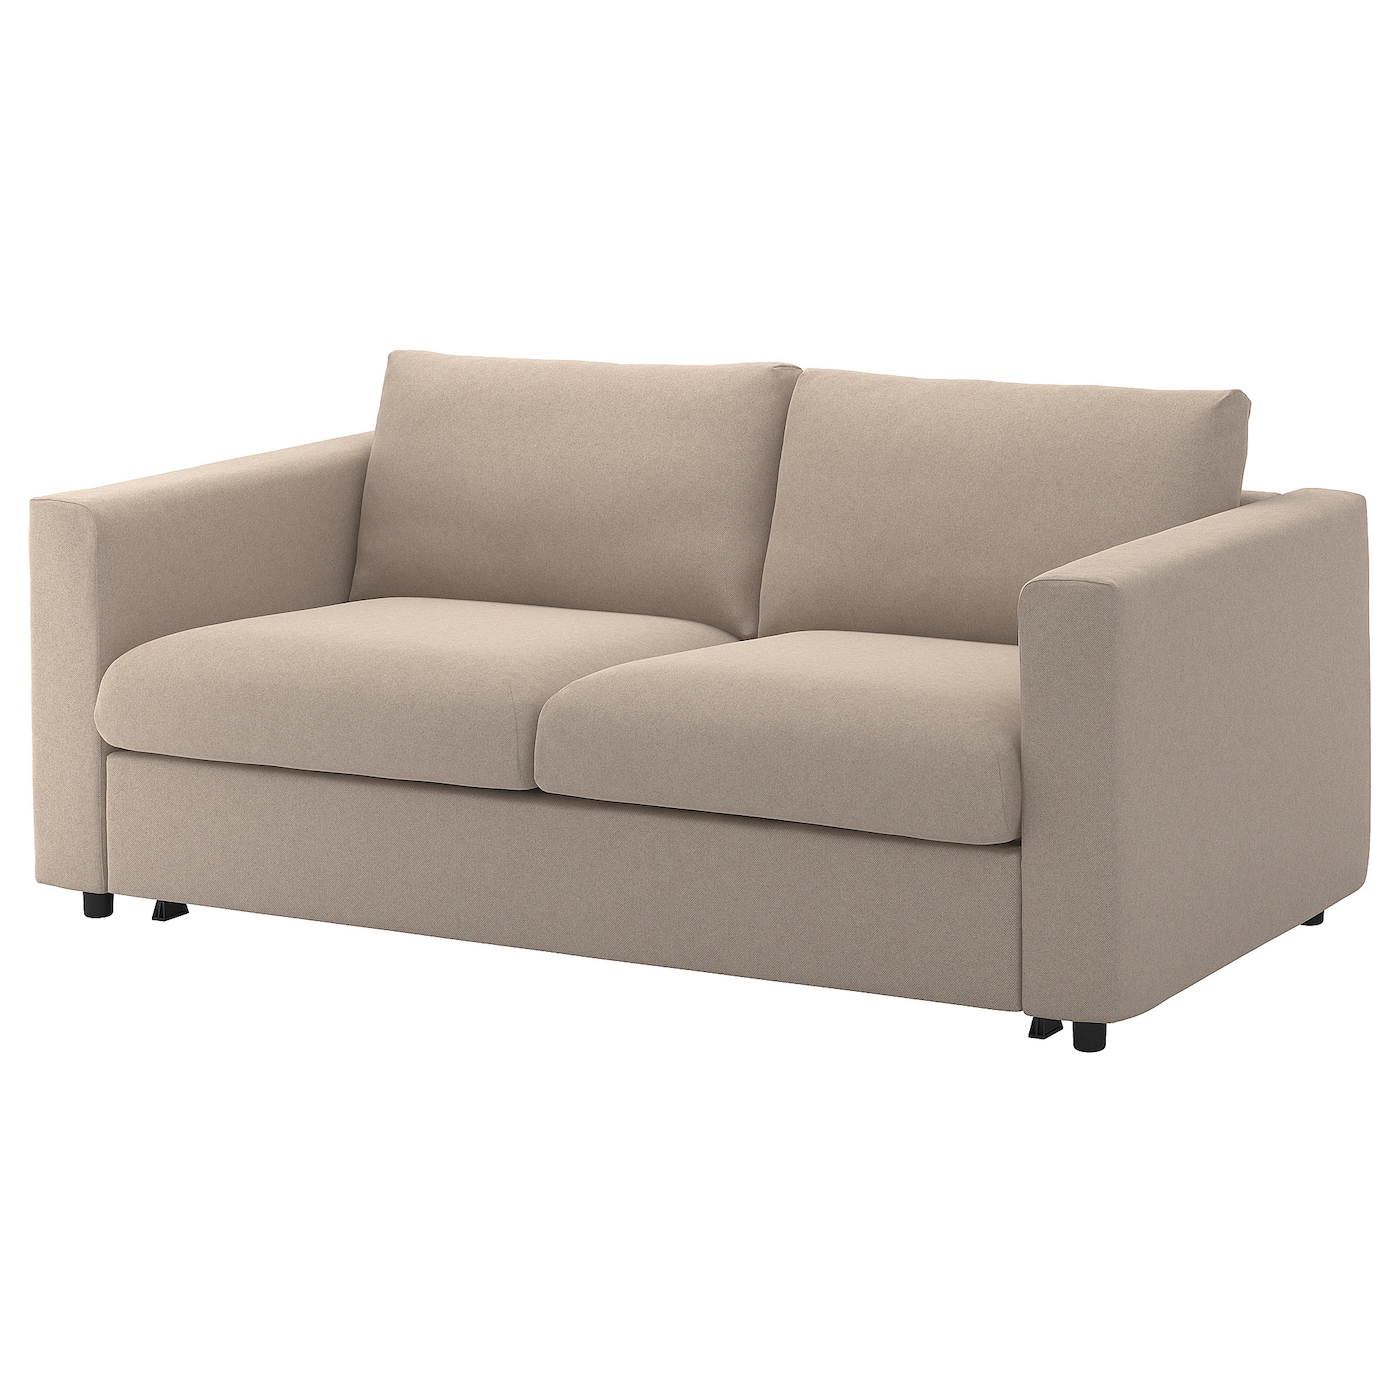 IKEA VIMLE cover for 2-seat sofa-bed